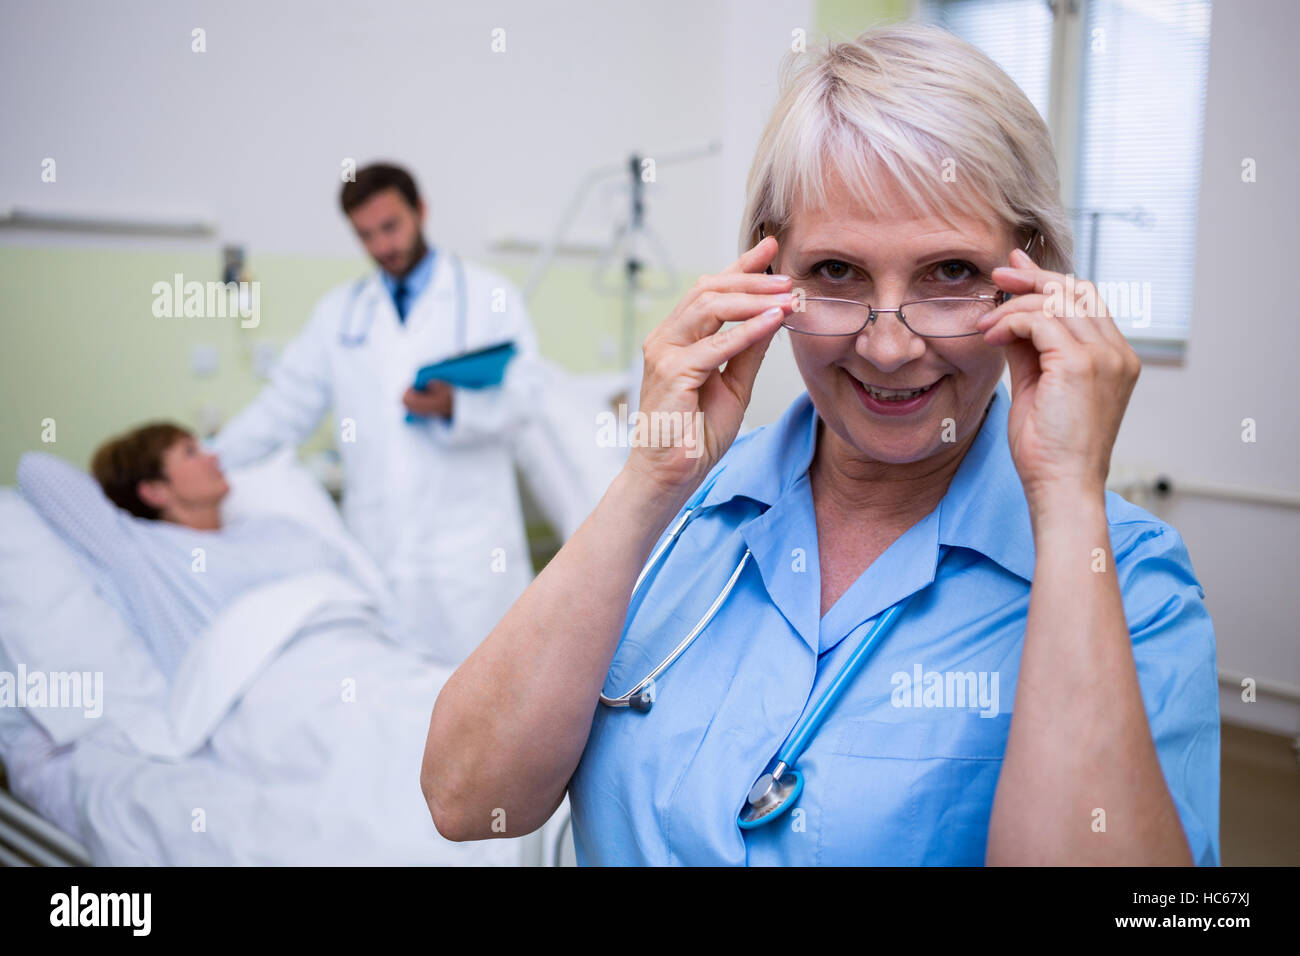 Portrait of smiling nurse wearing spectacle - Stock Image